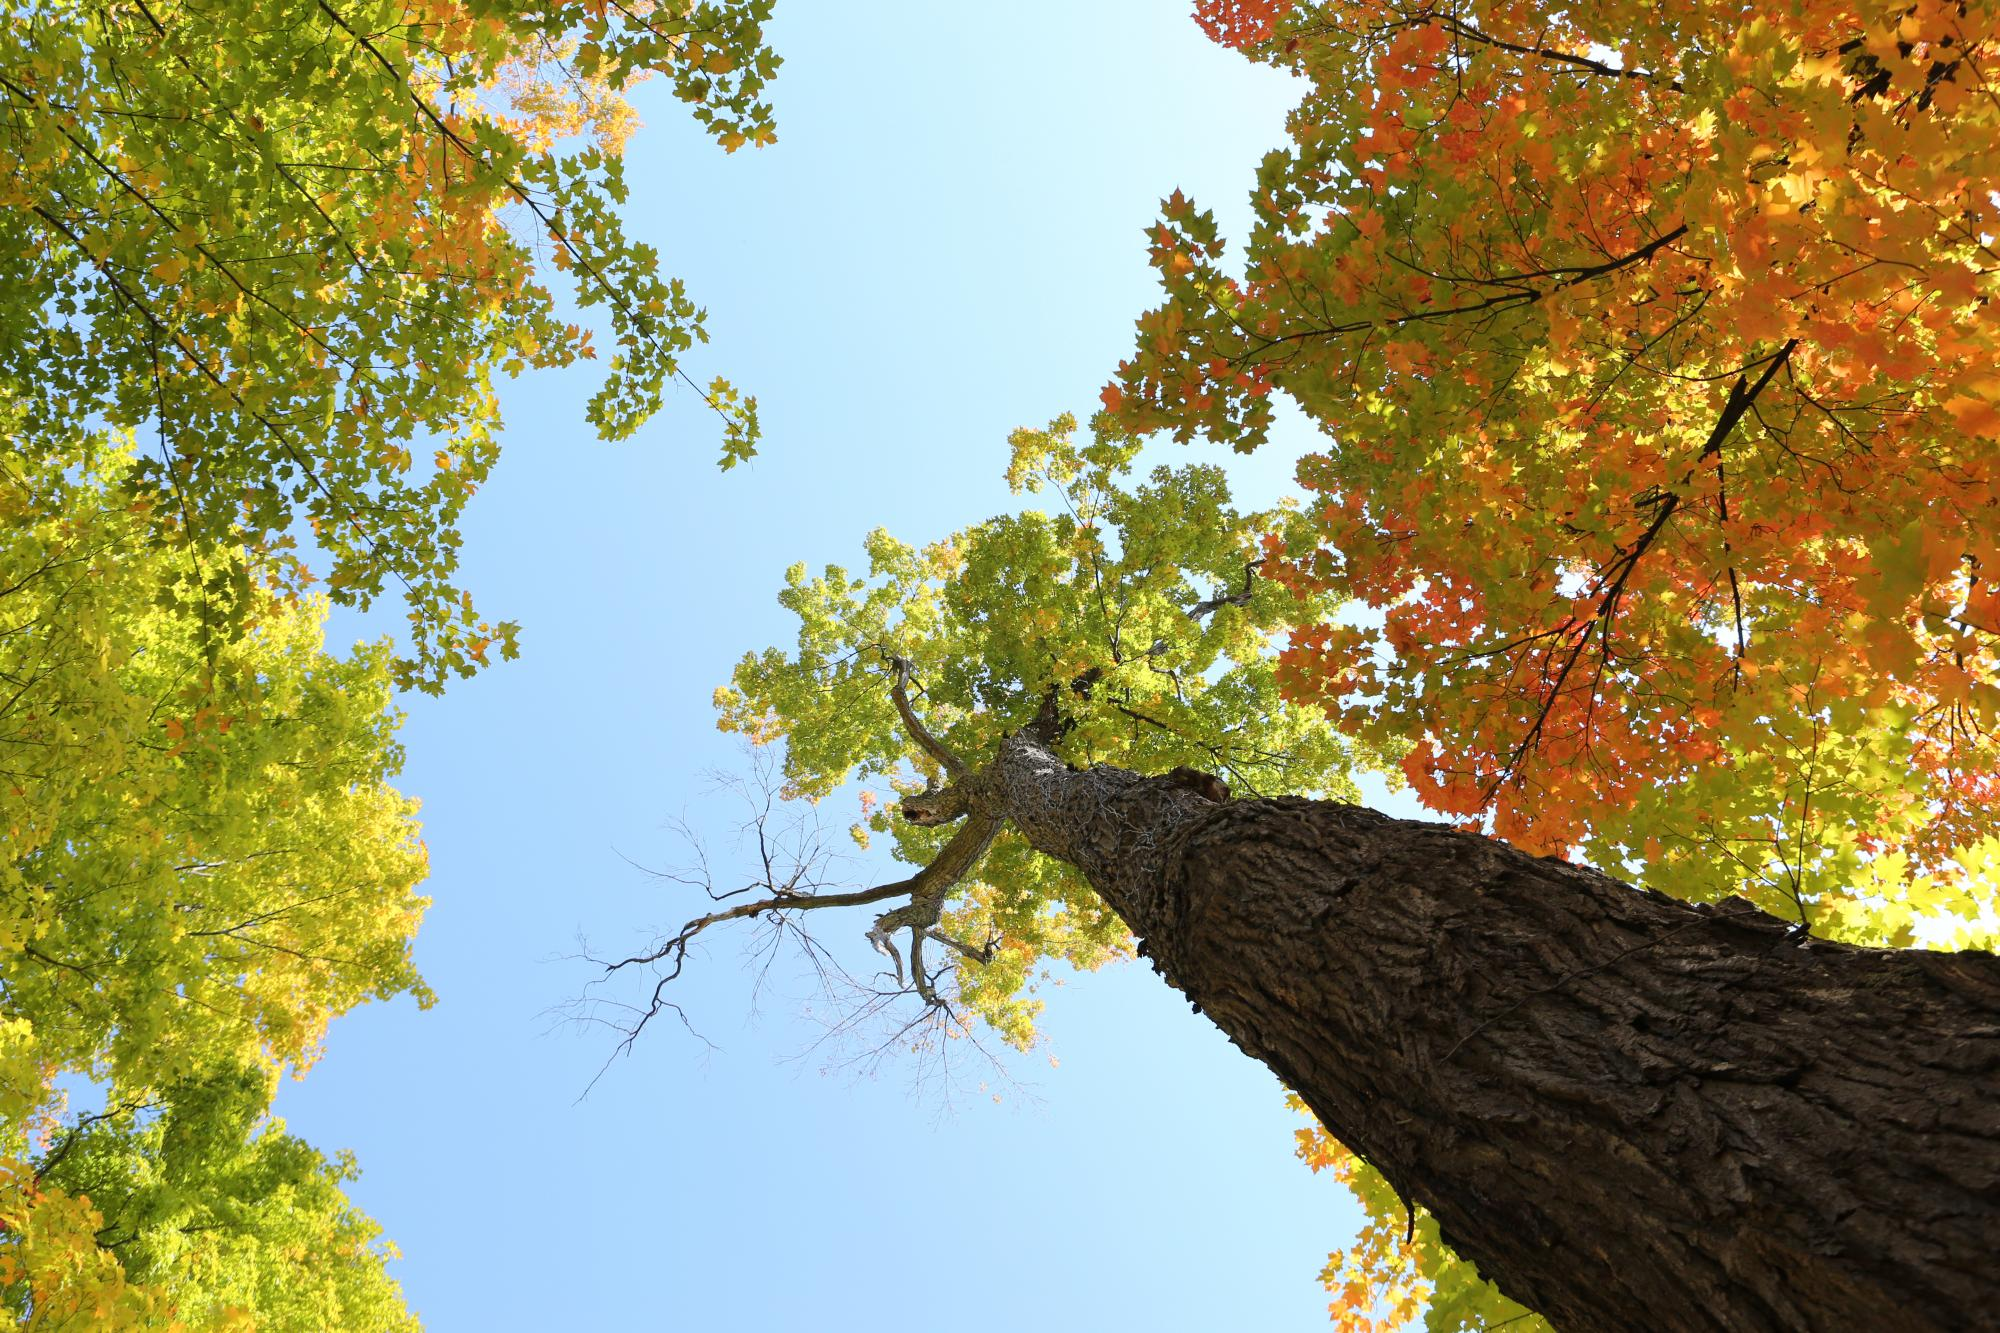 Life-of-Pix-free-stock-photos-trees-autumn-leaves-sky-leeroy